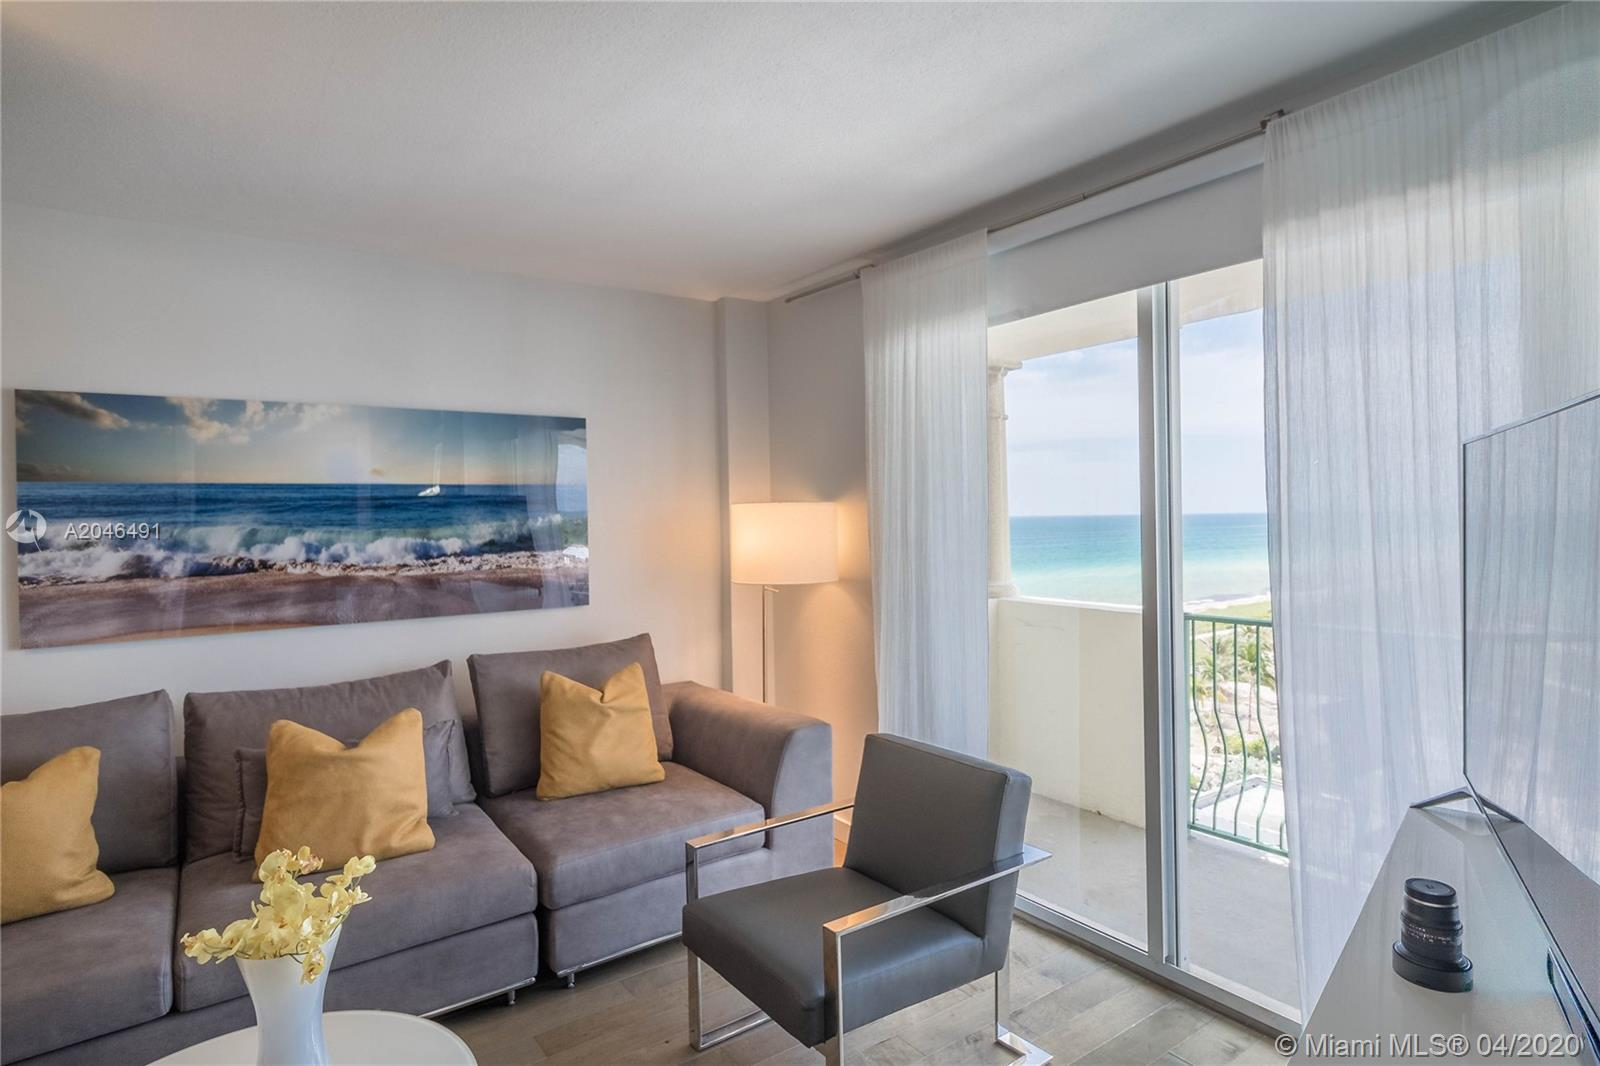 9195  COLLINS AV #906 For Sale A2046491, FL